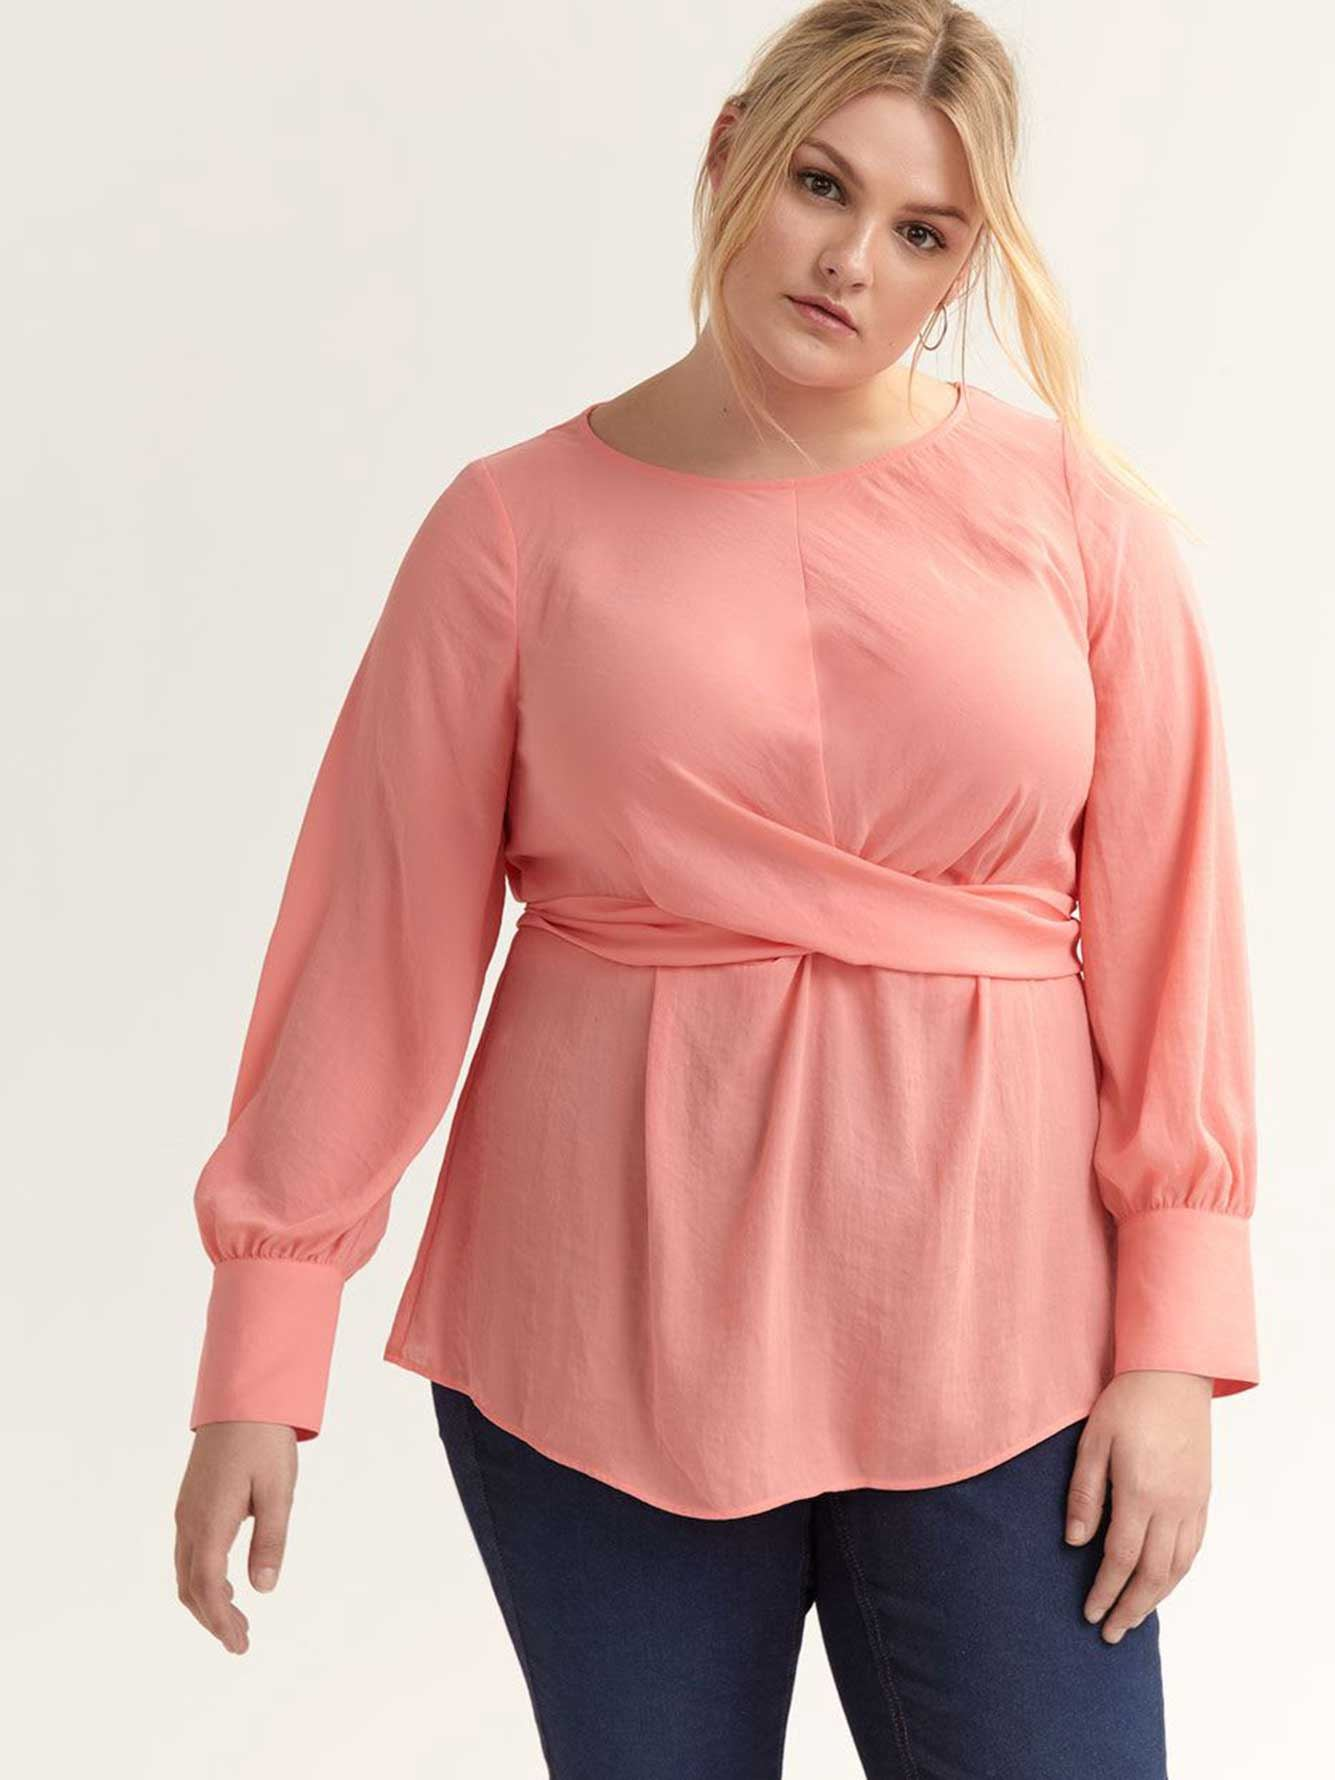 Knotted Blouse with Puffy Sleeves - L&L